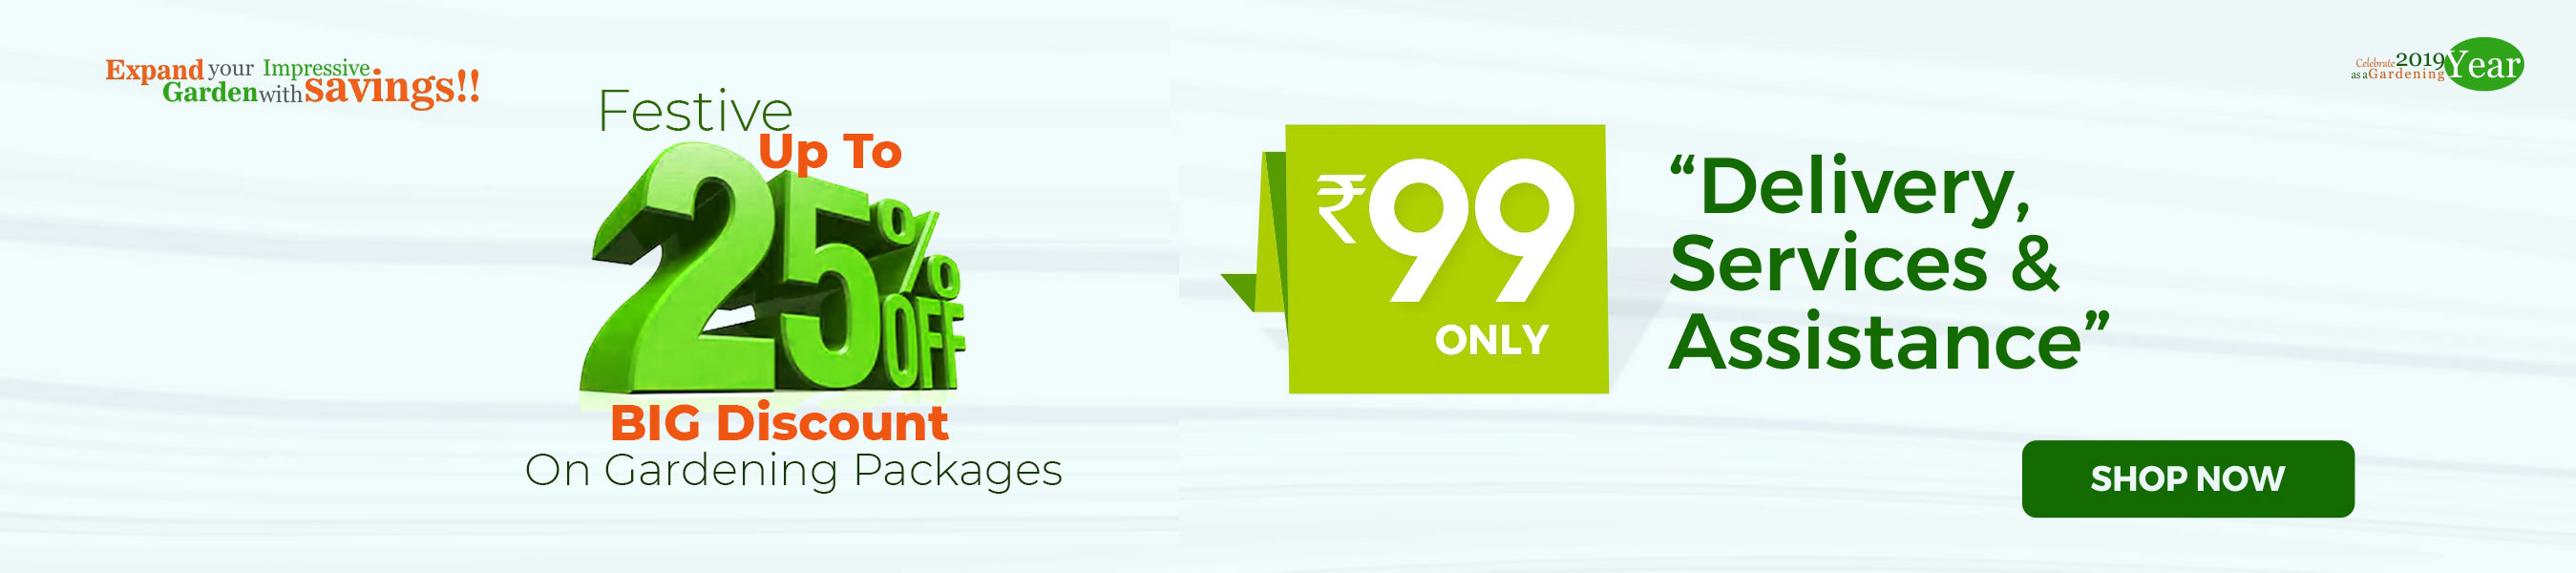 MDG Festive upto25% Discount on Garden packages